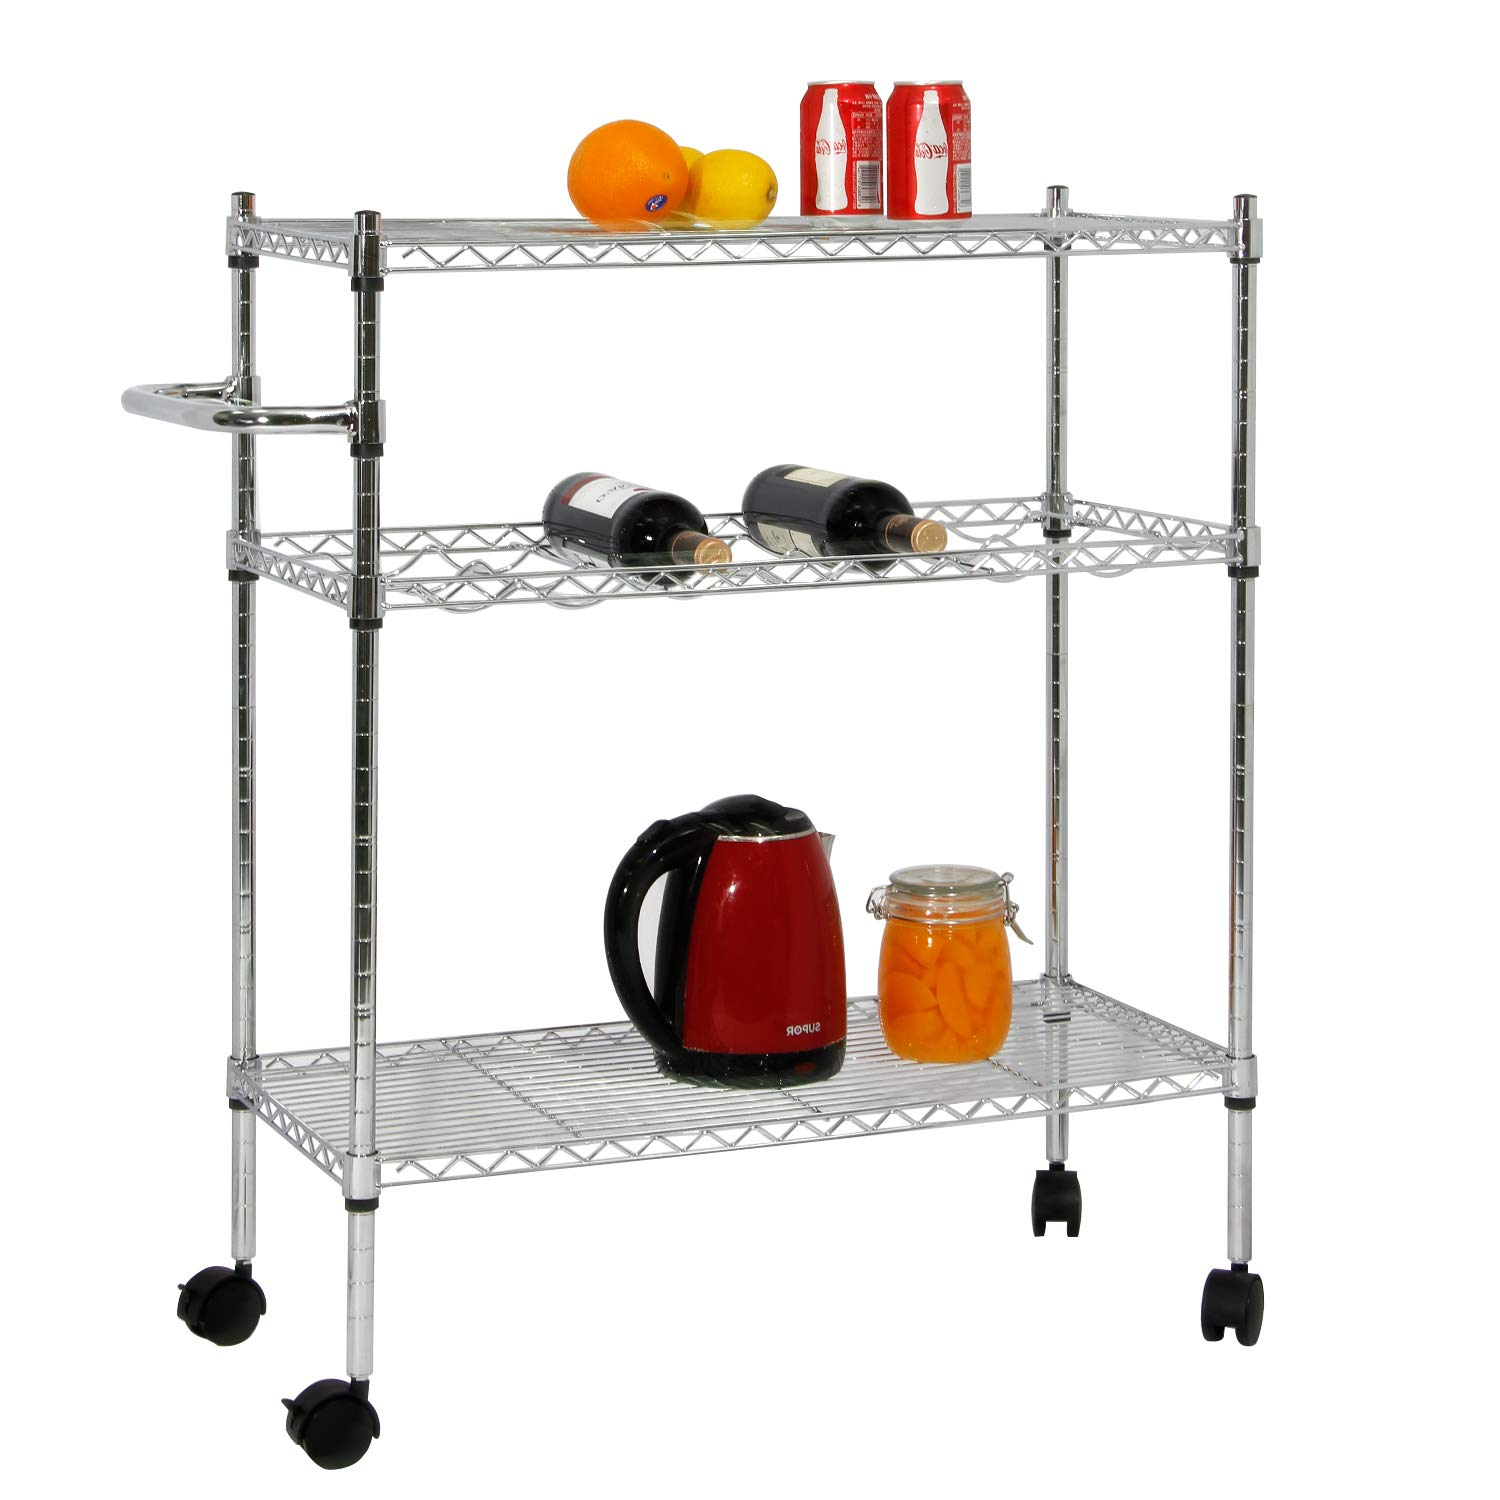 soges Storage Shelf with Wheels, Rolling Cart, Storage Shelf Trolley,Units for Home, Kitchen, Bathroom, Stainless Steel KS-ZSCS-05